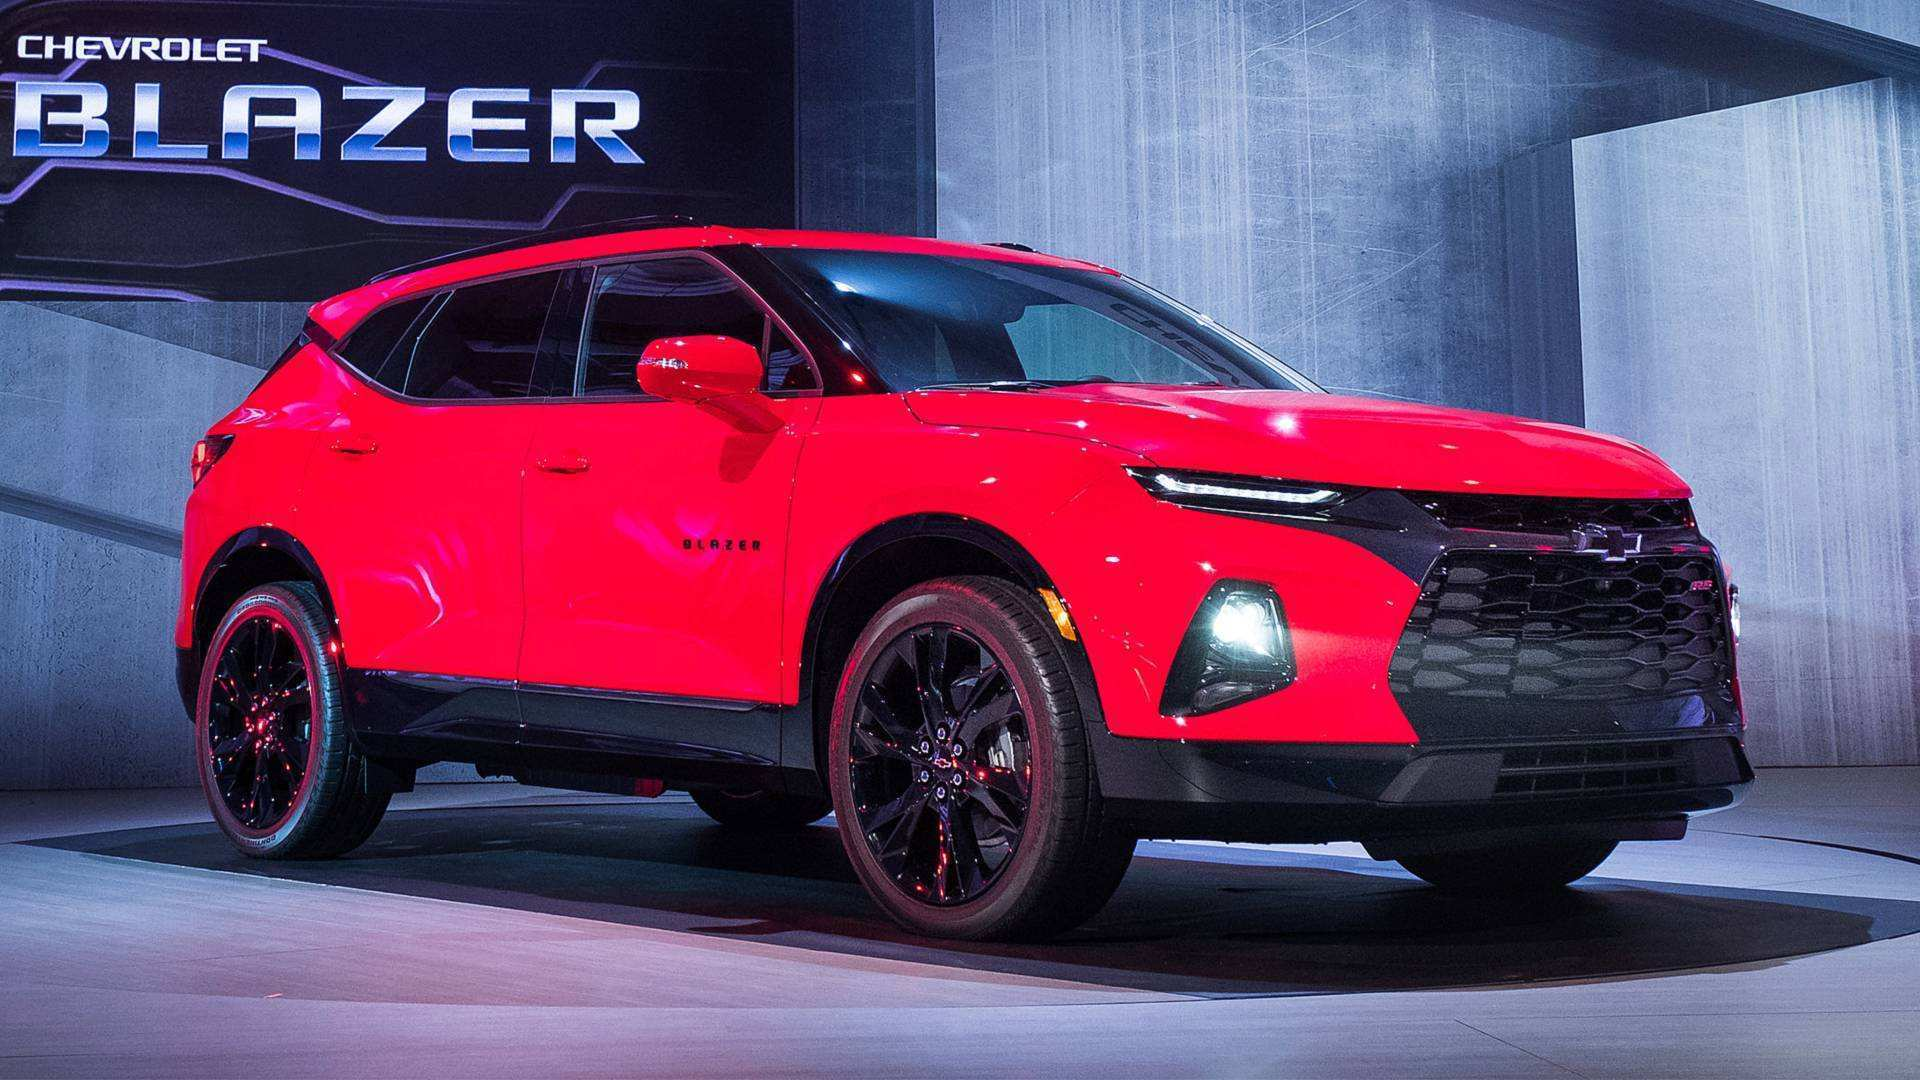 45 The Chevrolet Blazer 2020 Specs Review And Release Date